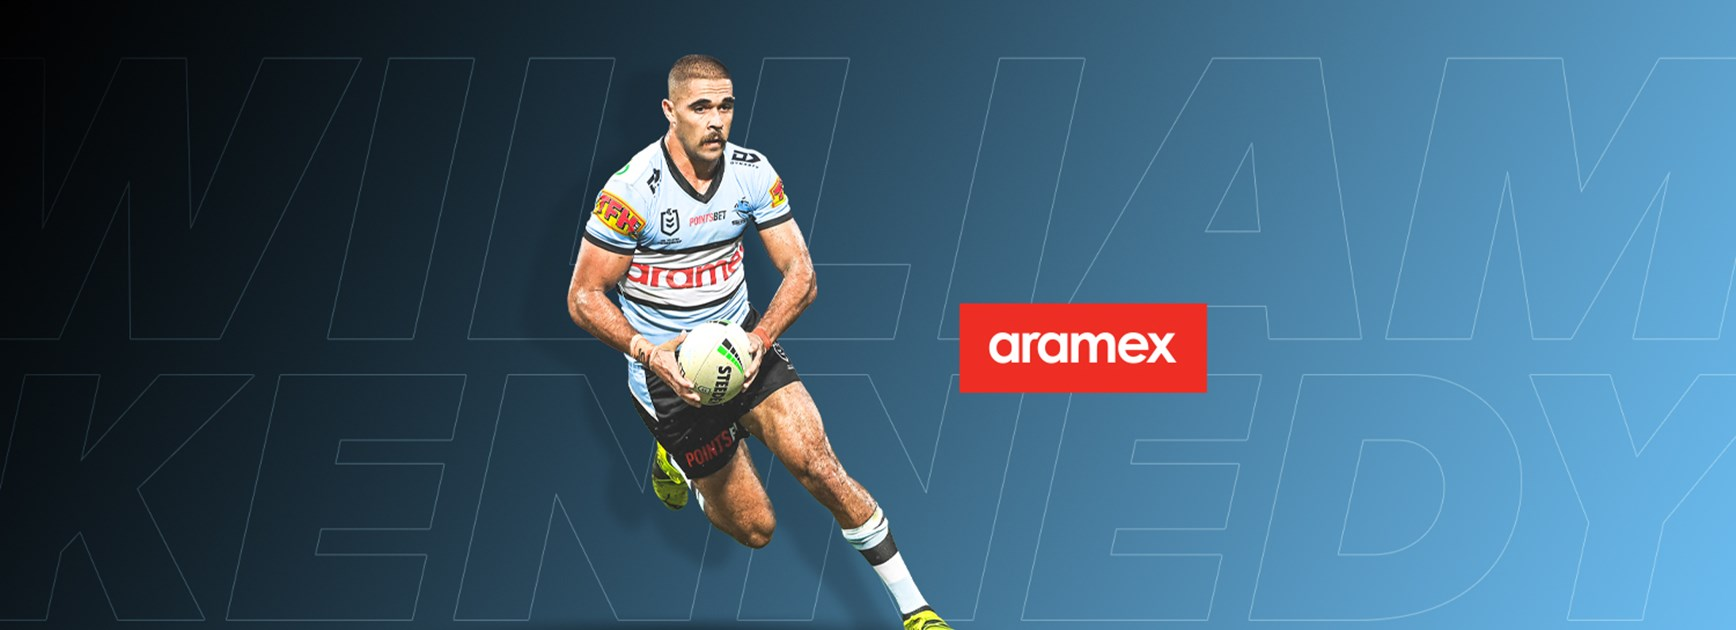 Round 6 Aramex Man of the Match